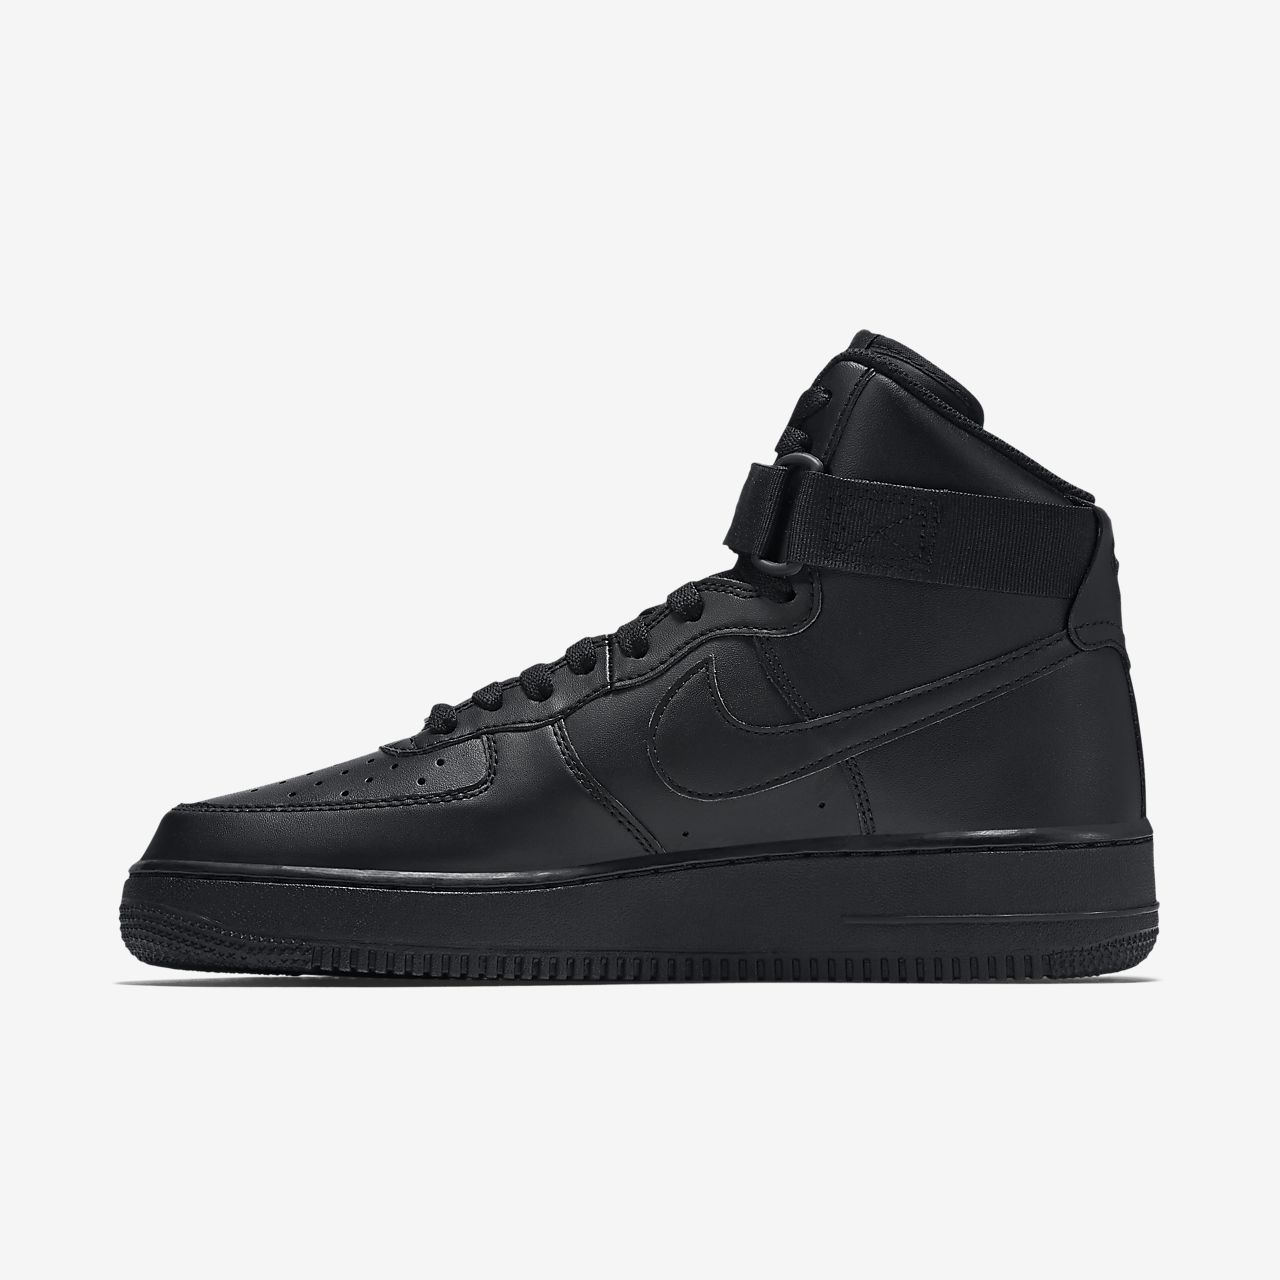 9e023a10612 Cheap Nike Air Force 1 : Buy Nike Sneakers & Shoes | Air force 1 ...